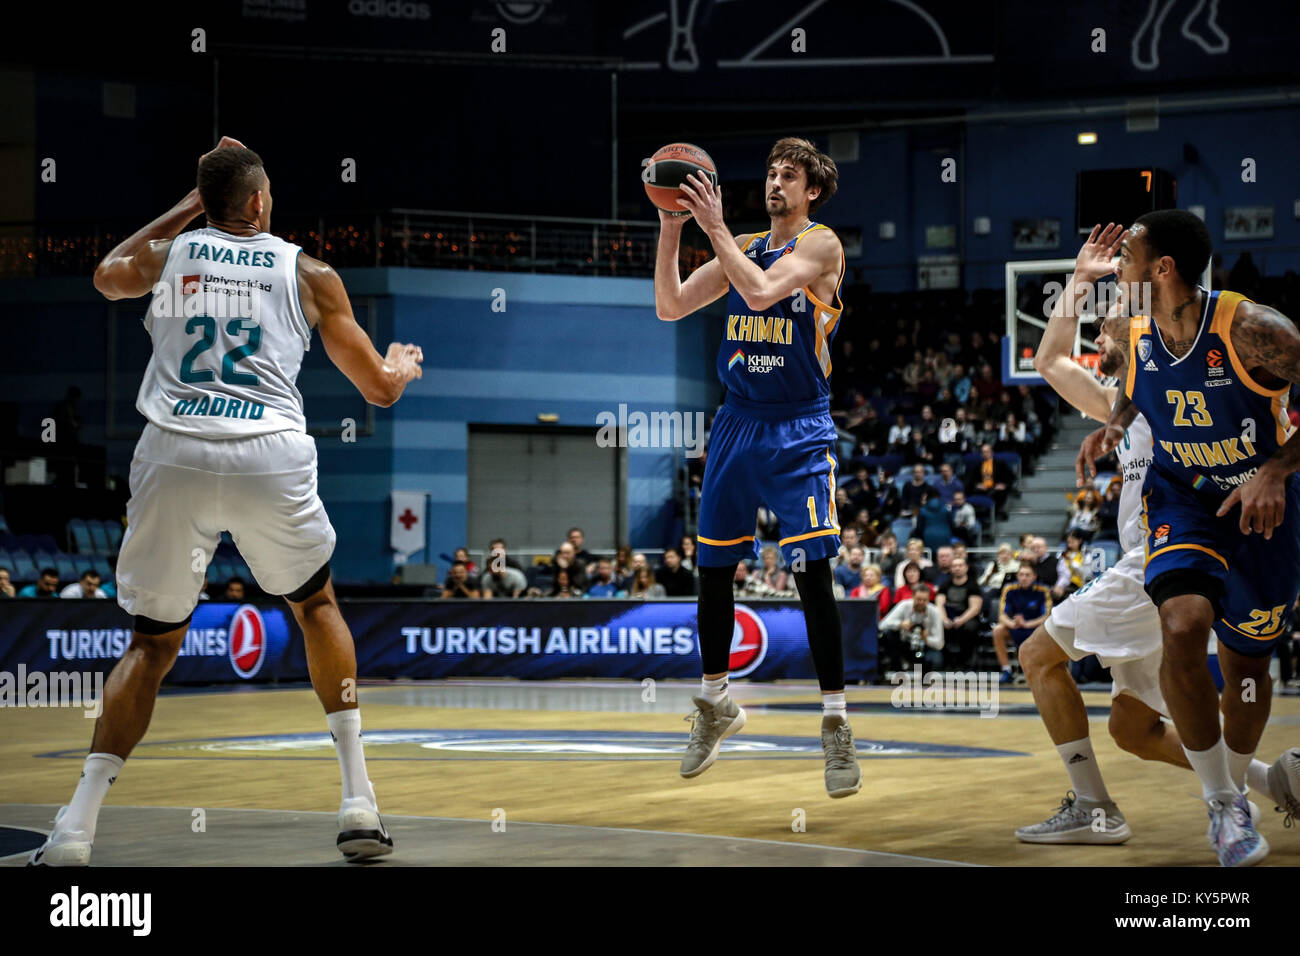 Moscow, Russia. 12th Jan, 2018. Alexei Shved, #1 of Moscow Khimki shoots a jumpshot against Walter Tavares, #22 - Stock Image